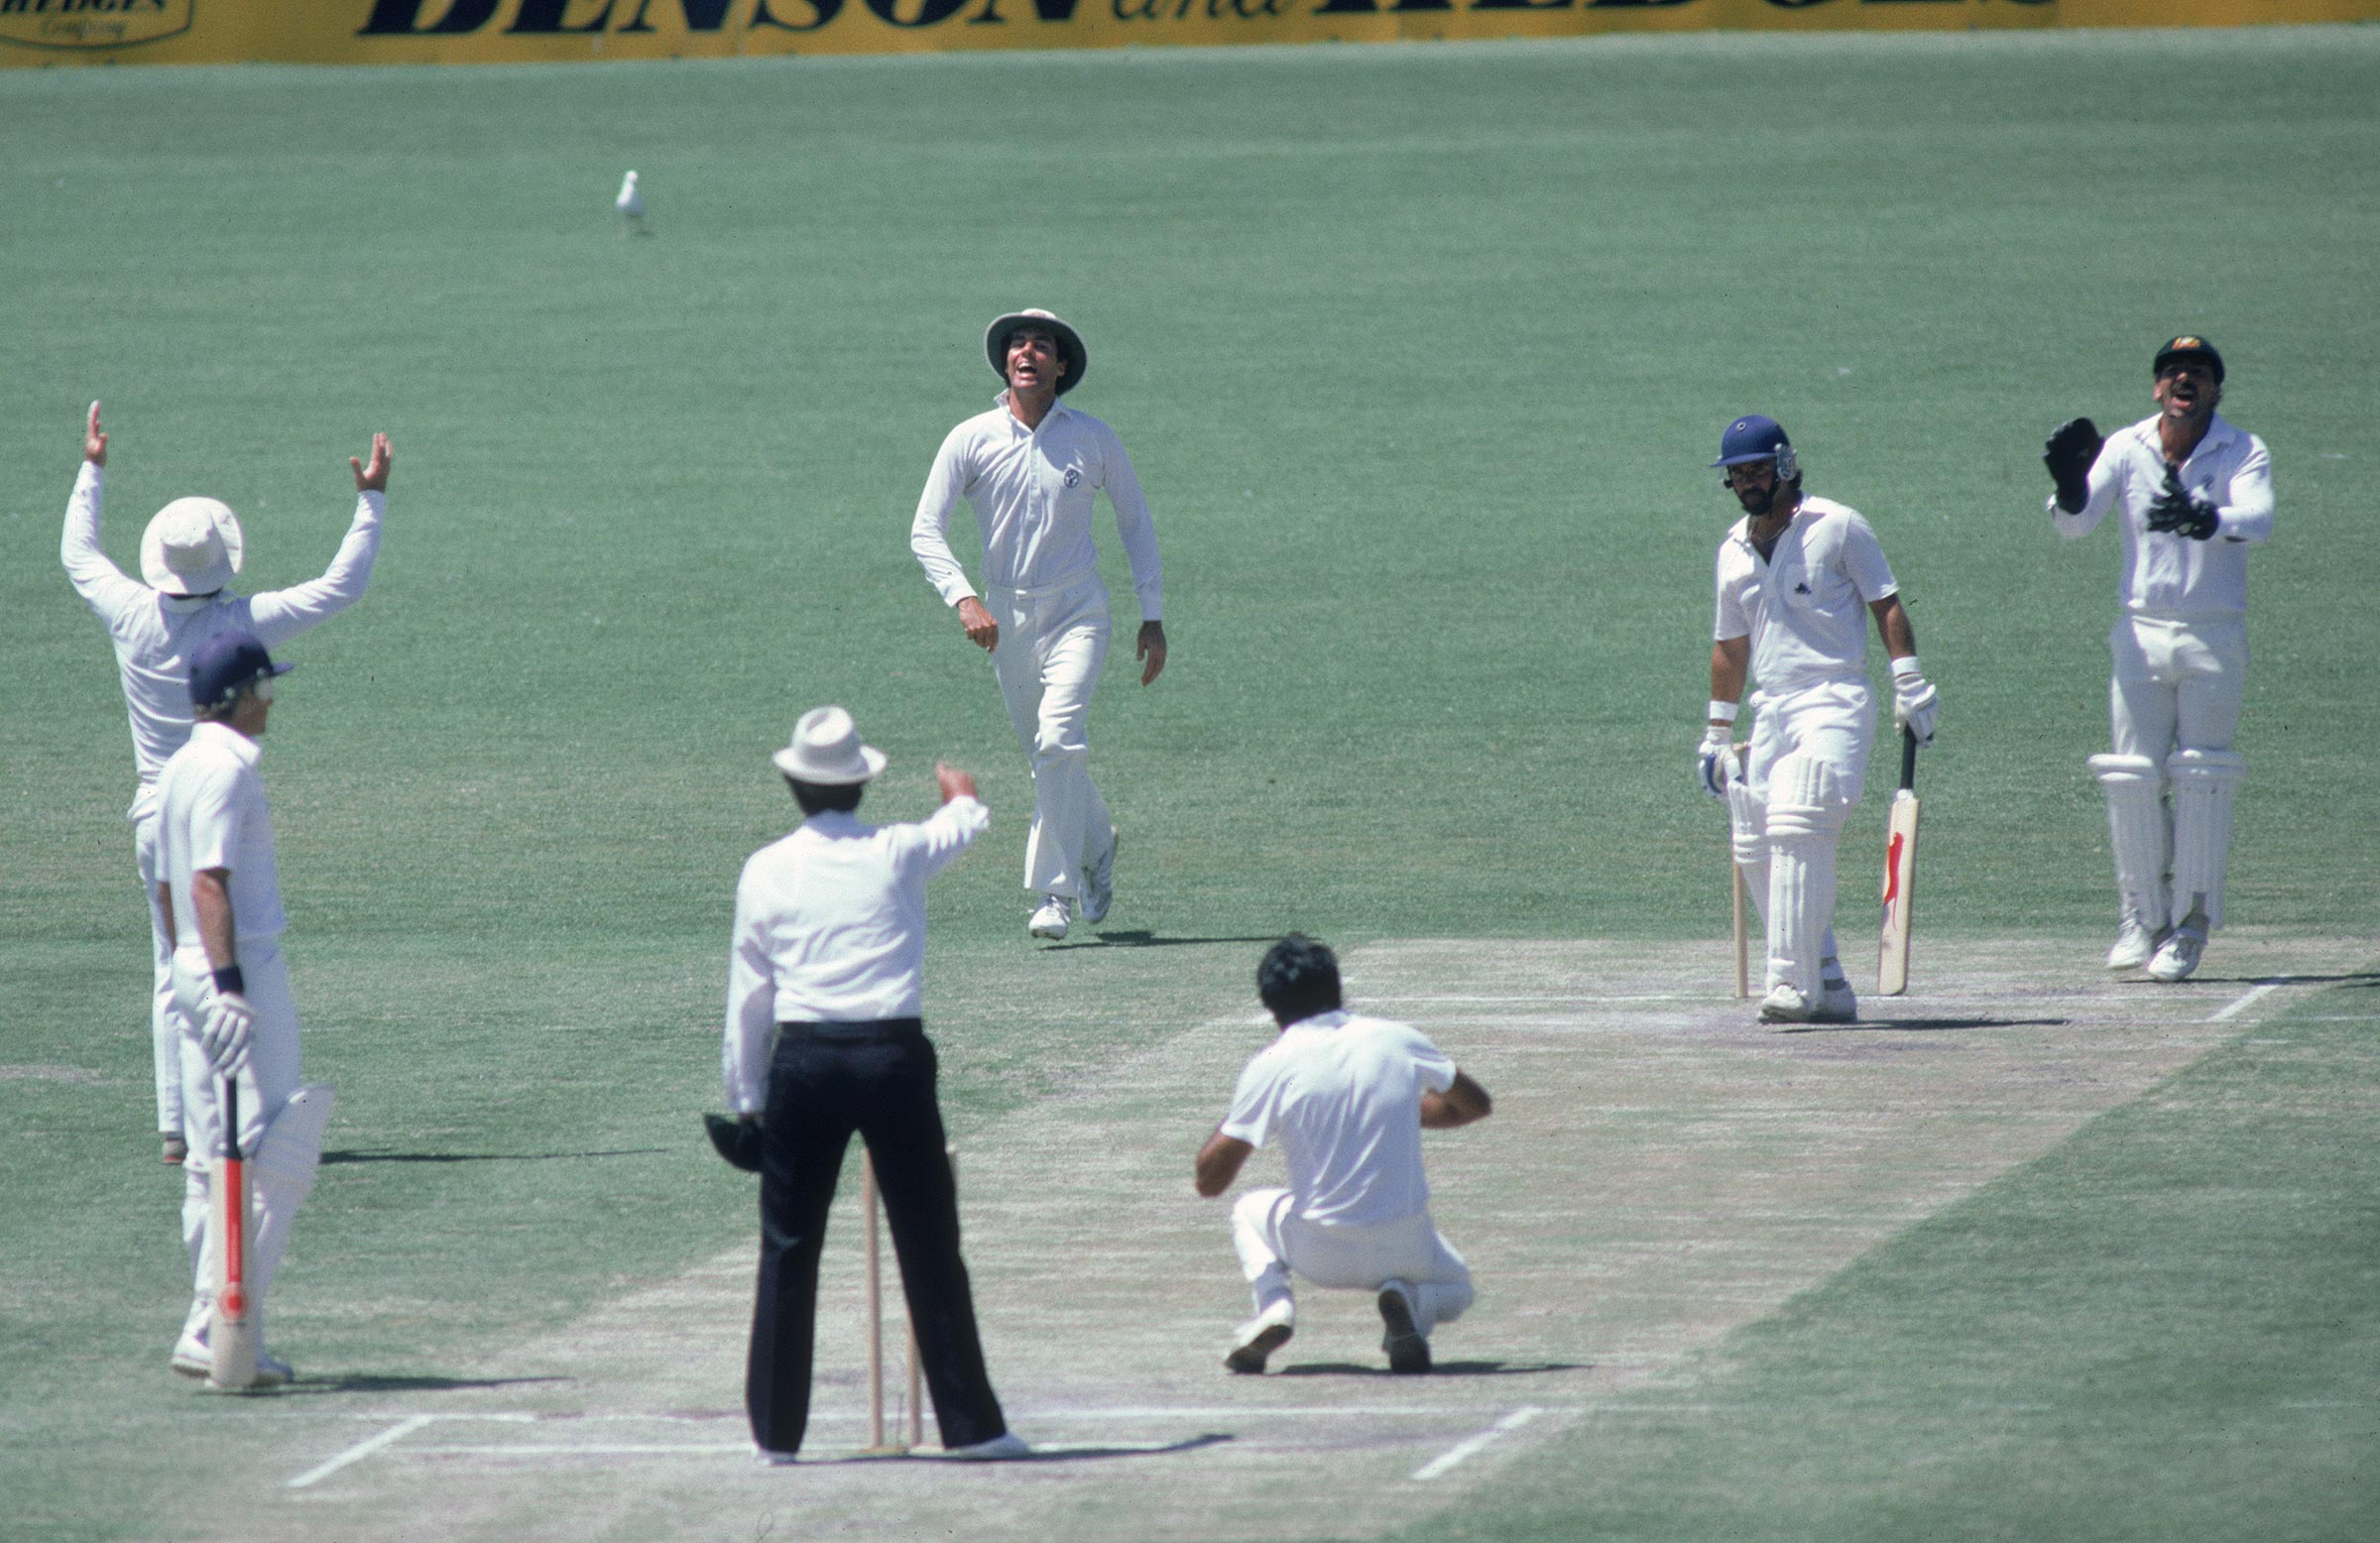 Greg Chappell takes a catch of Yardley's bowling in 1982 // Getty